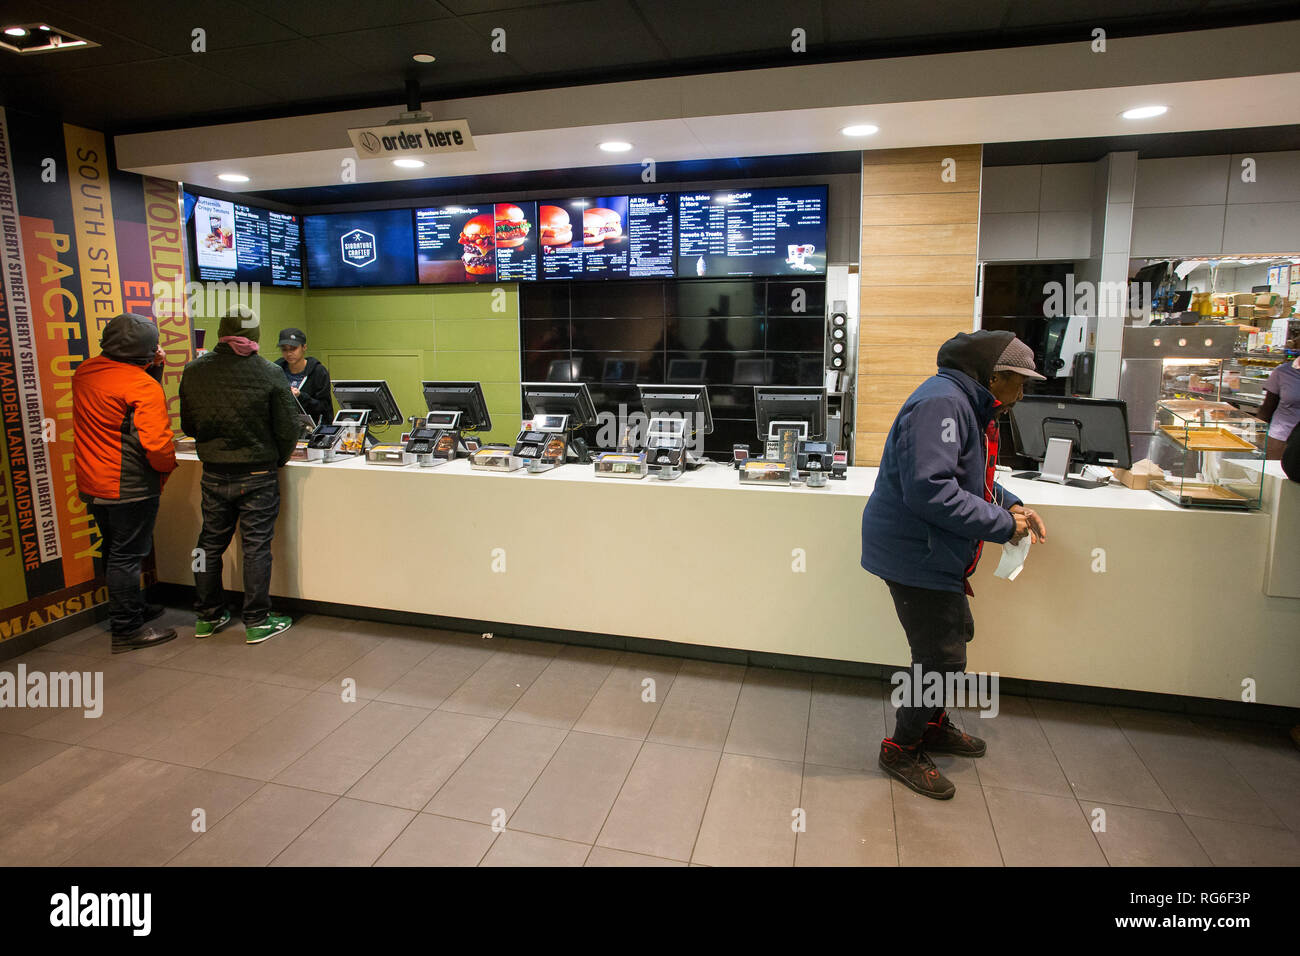 Counter inside a McDonalds fast food restaurant store, New York City, NY, USA. - Stock Image